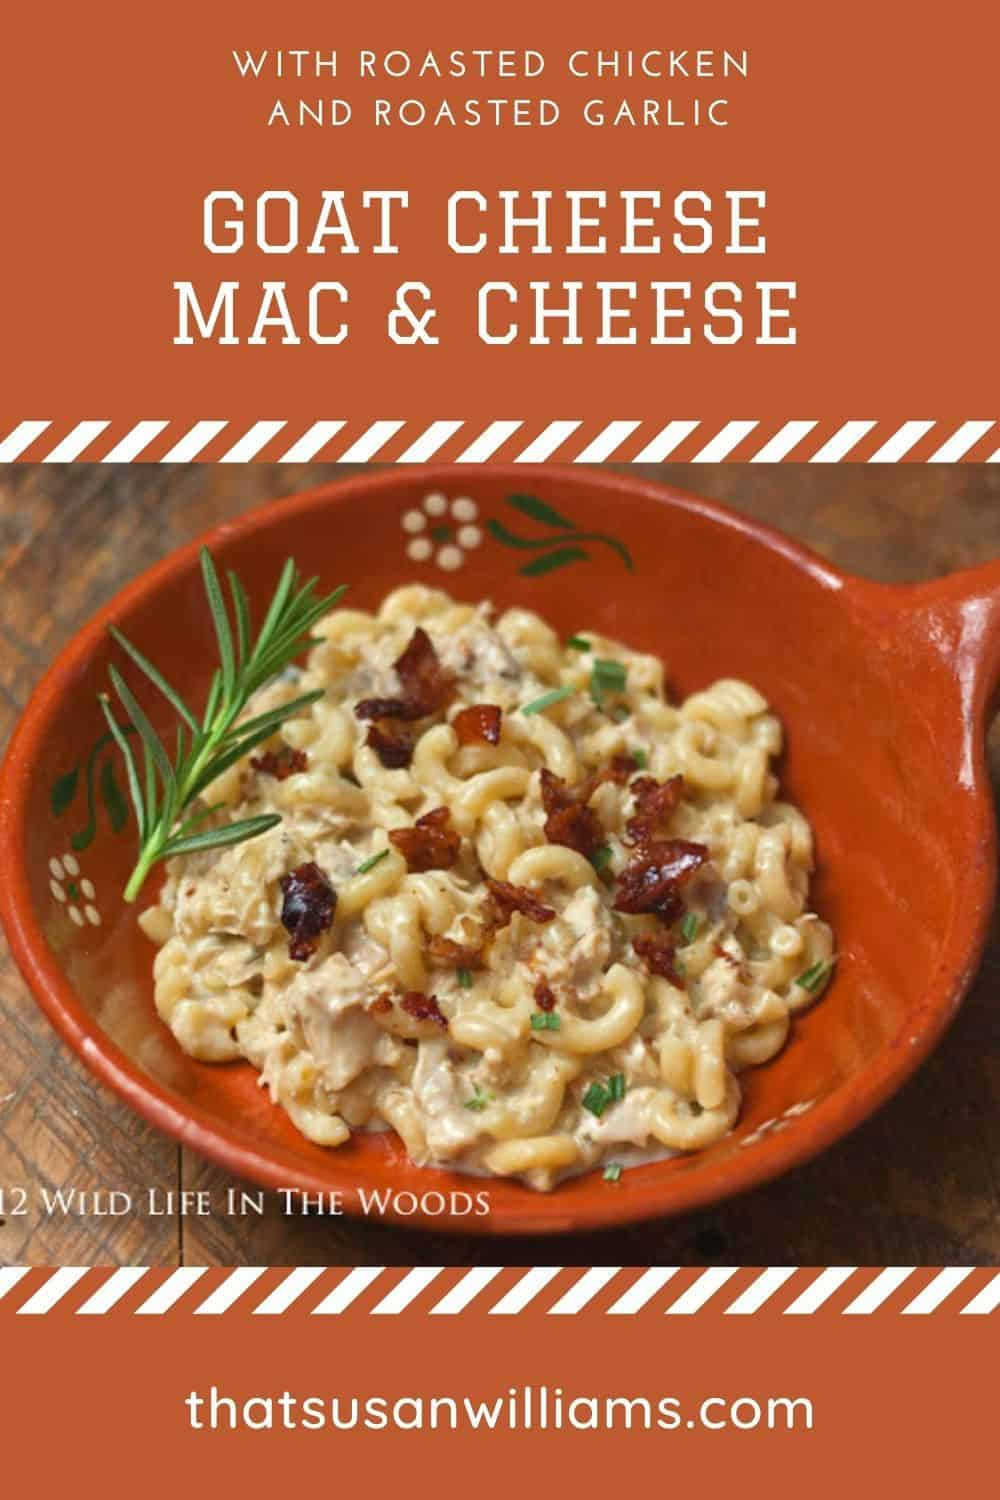 Goat Cheese Macaroni & Cheese with Roasted Chicken and Roasted Garlic is the best mac and cheese I have ever had. And you won't believe the taste of the Chicken Skin Bacon!